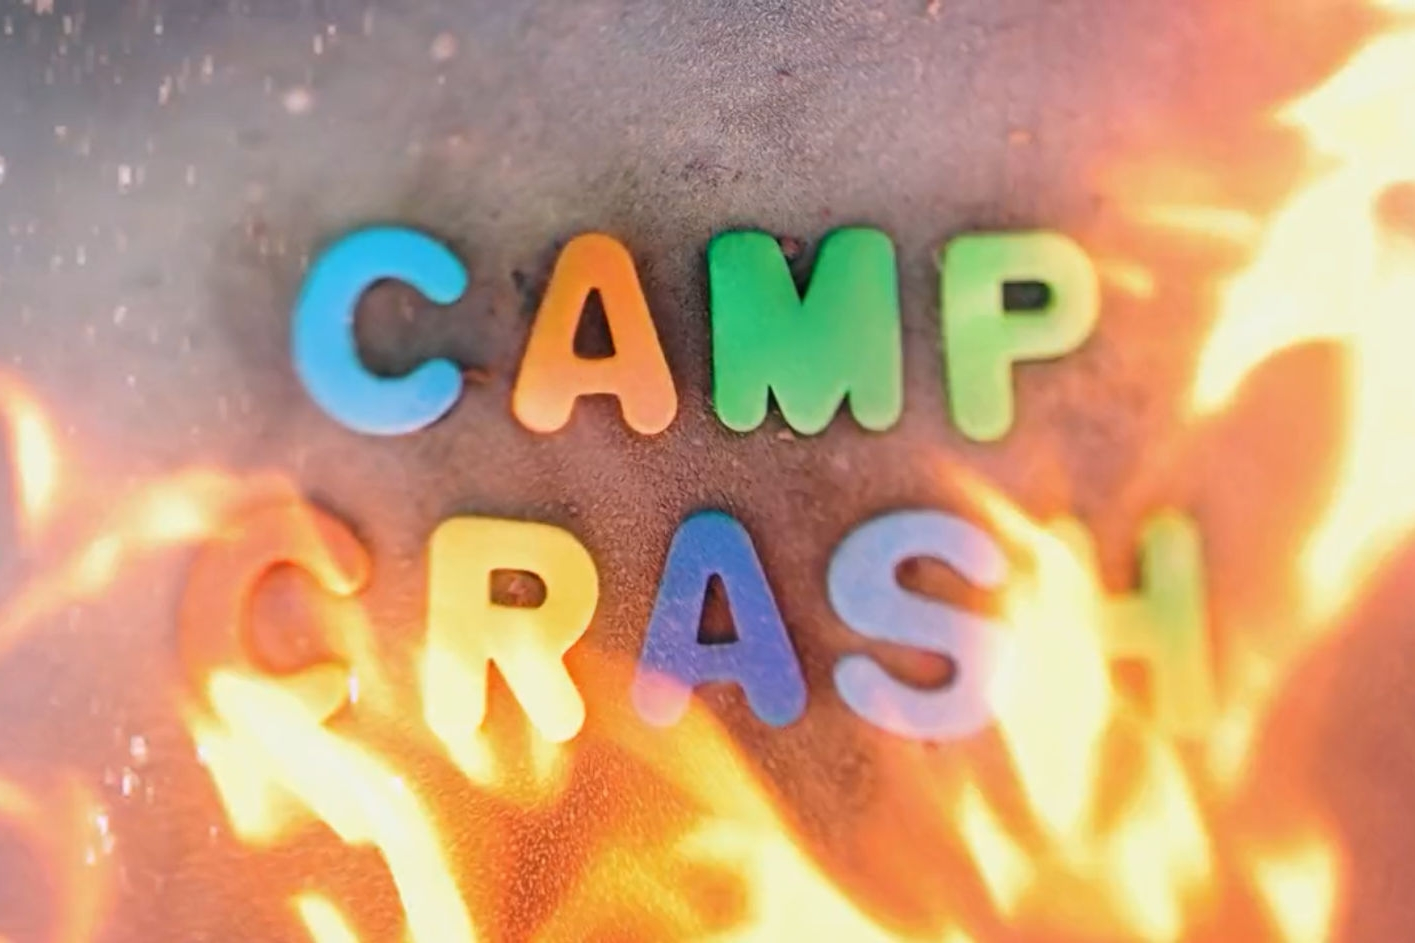 Kickstarting the Apocalypse - Daniel Crosier talks about Camp Crash Episode 2   Written by Neil Greenaway